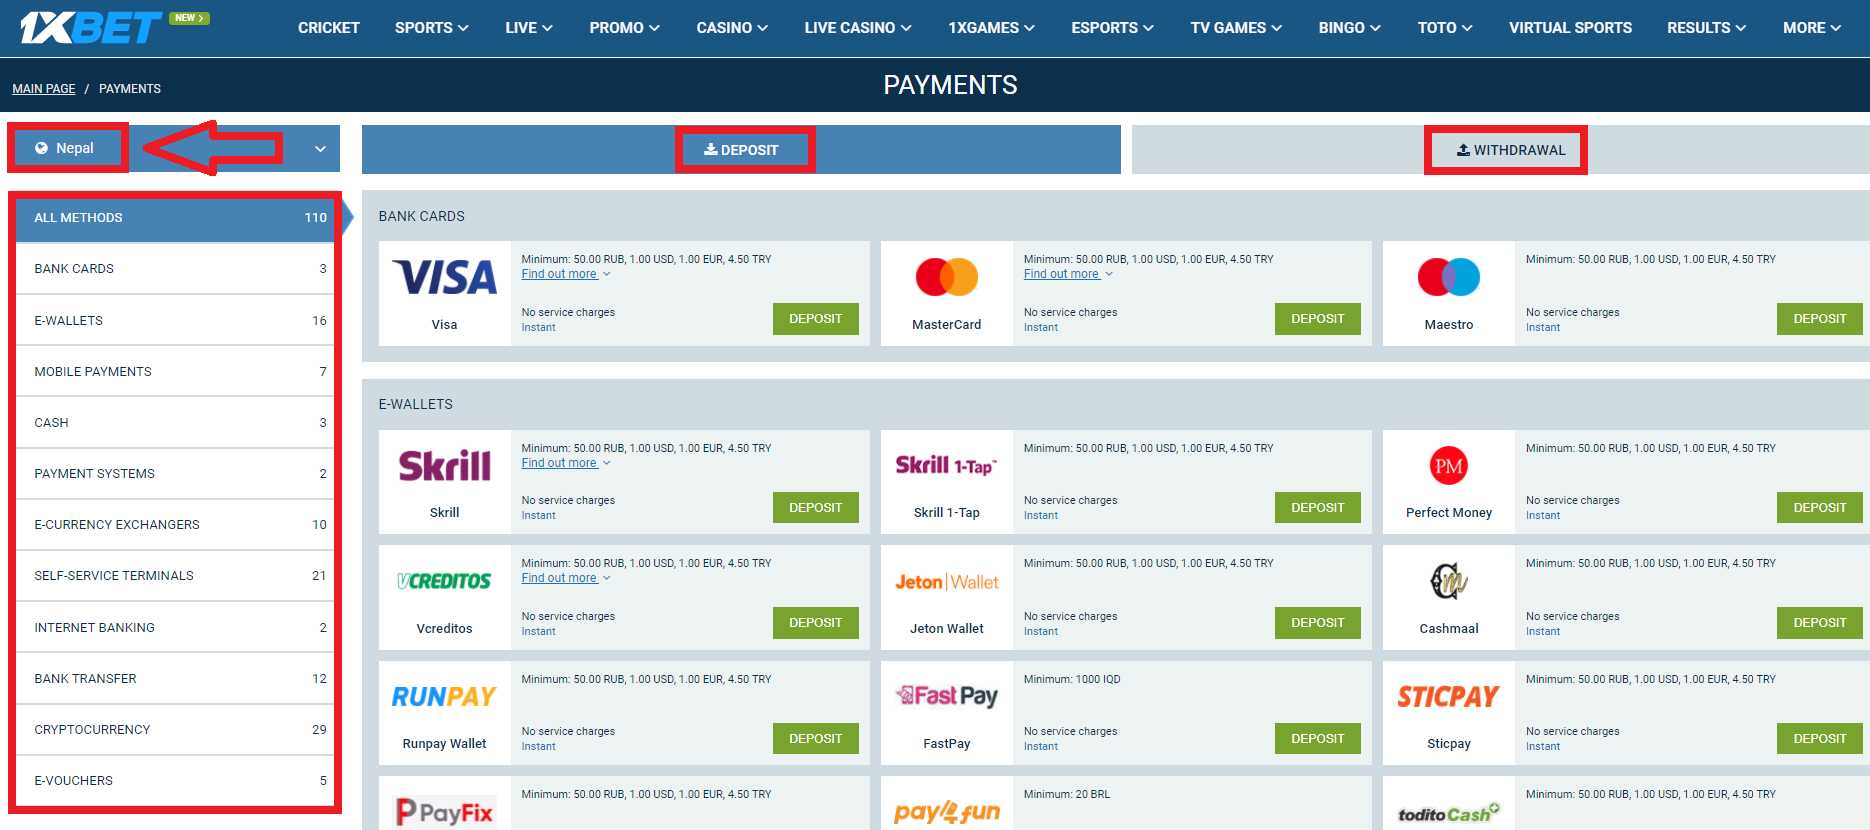 How to use money for registration bonus at the company 1XBET